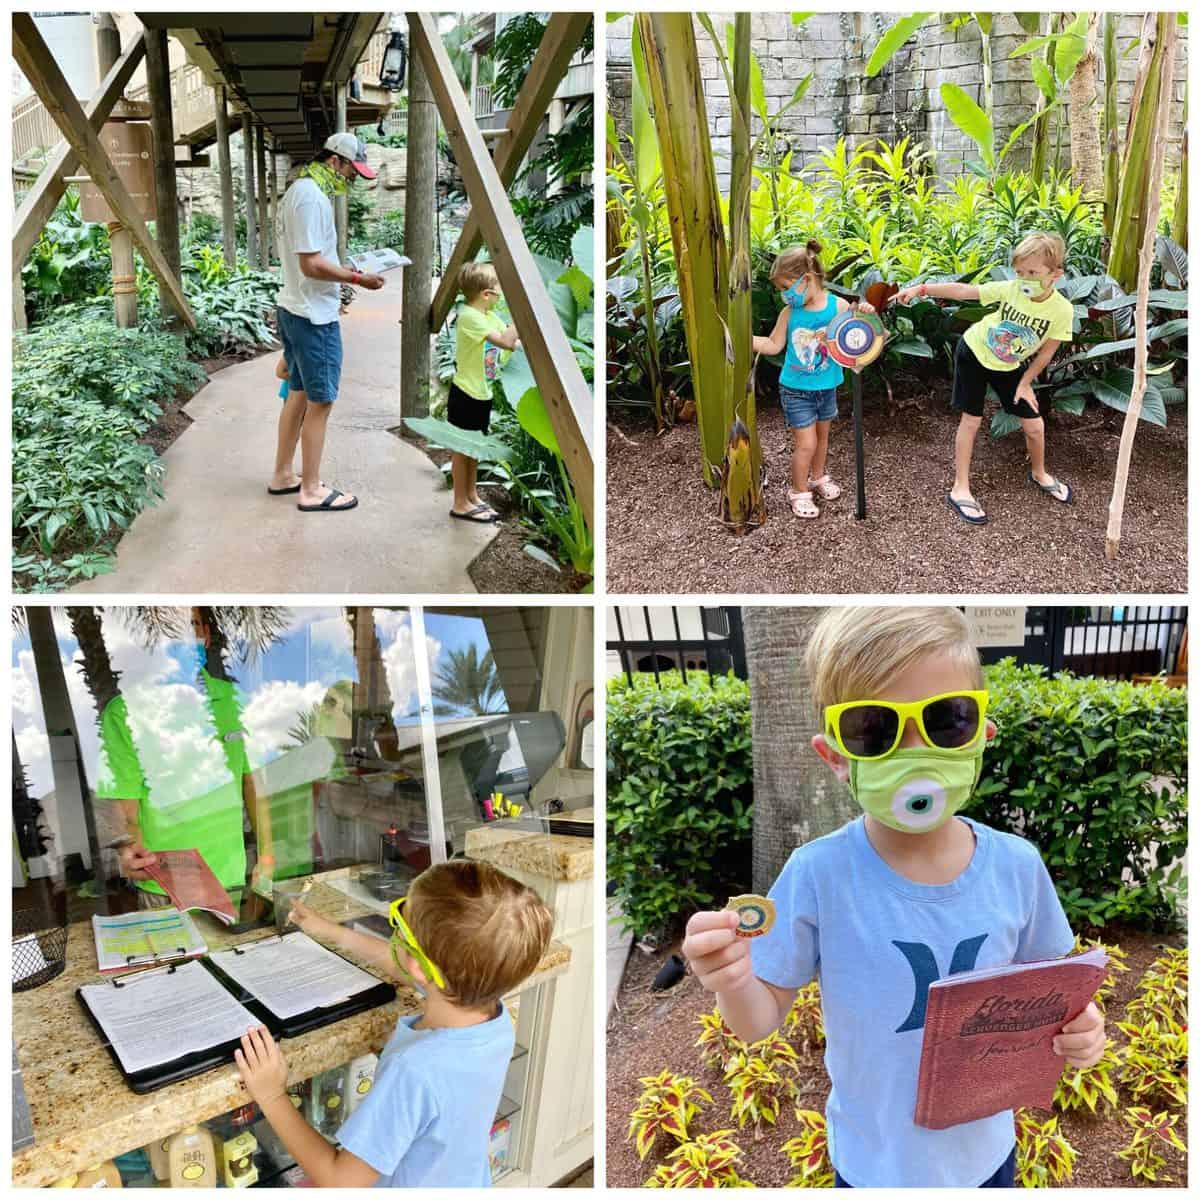 Four photos of kids and father doing a scavenger hunt around the Gaylord Palms Resort.